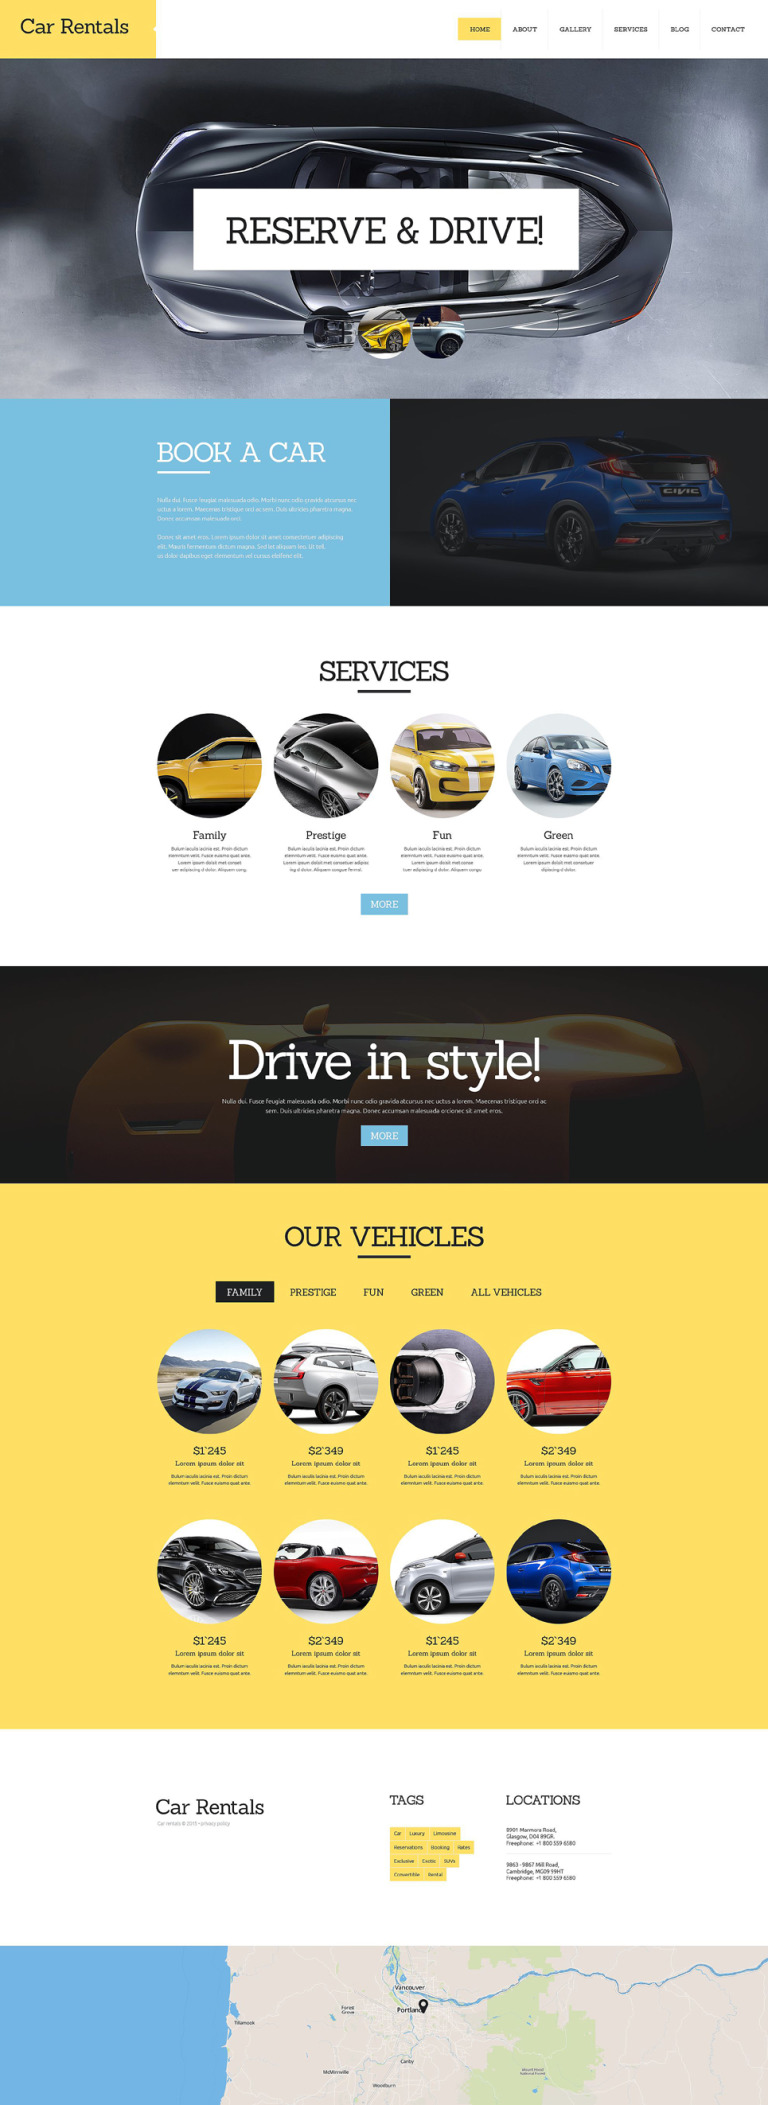 Car Rental Joomla Template New Screenshots BIG